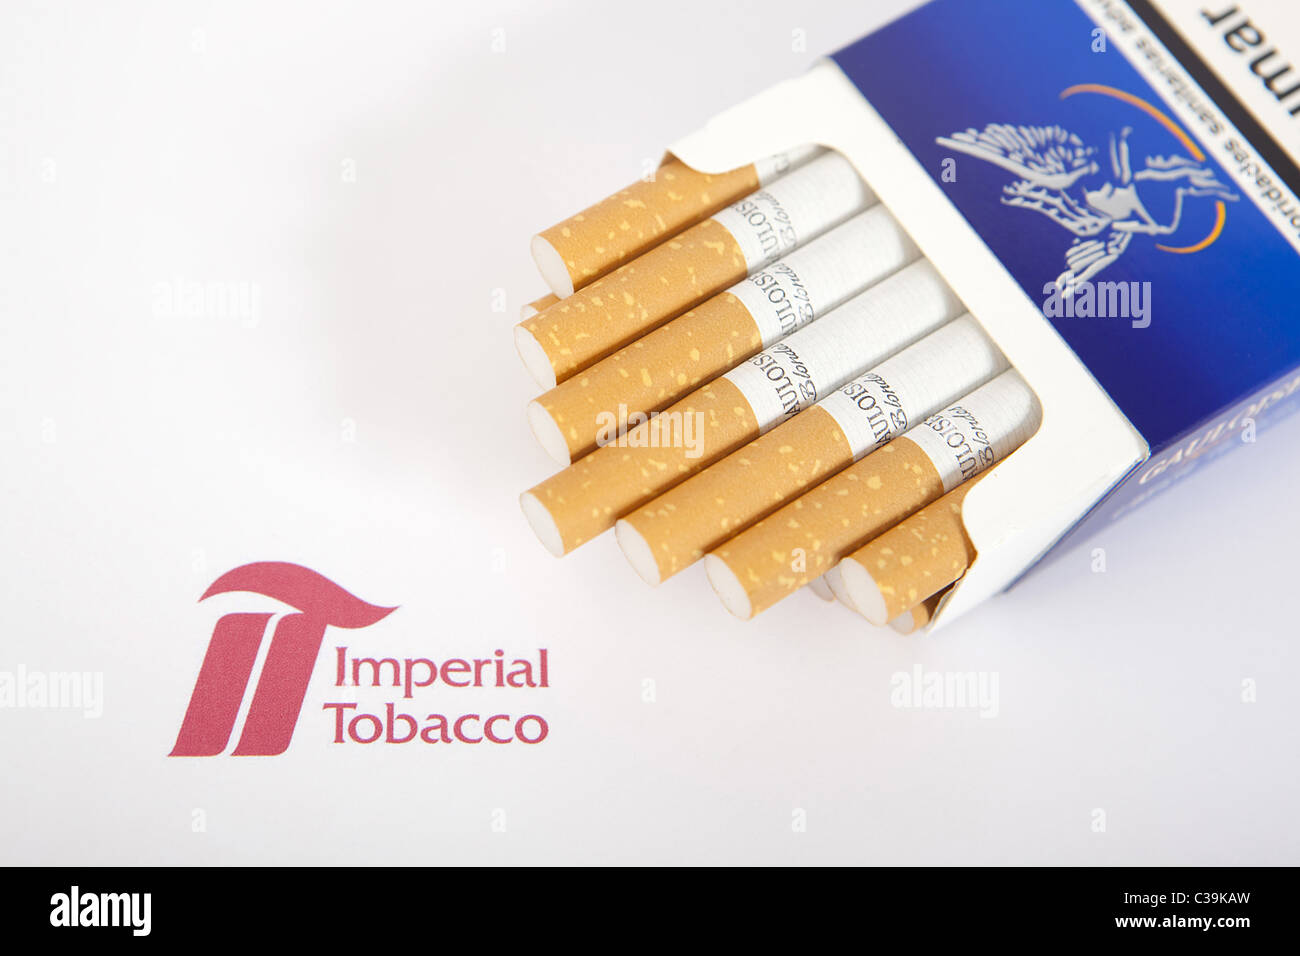 USA made Marlboro cigarette